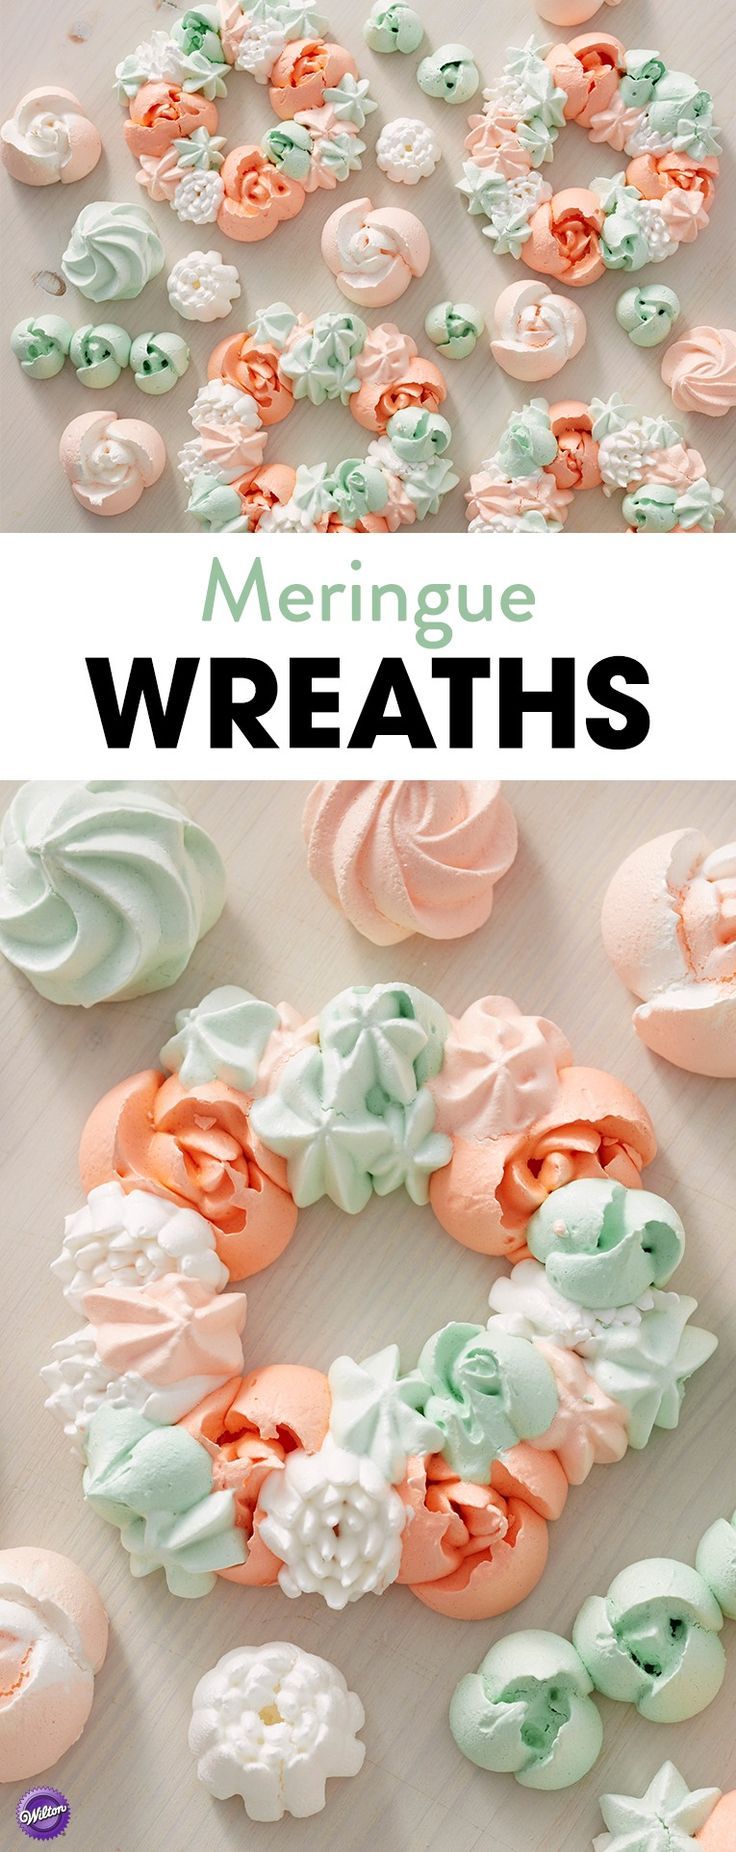 Meringue Wreaths Tutorial - These light and airy meringue cookies are perfect for brunches or celebrations like wedding showers or baby showers. Made using the Easy Blooms Tip Set, these Meringue Wreath Cookies may look challenging, but they're super easy to make! Best of all, no decorating required! Tint the meringue batter in various shades of orange and green to create lovely treats that are worthy of any celebration.